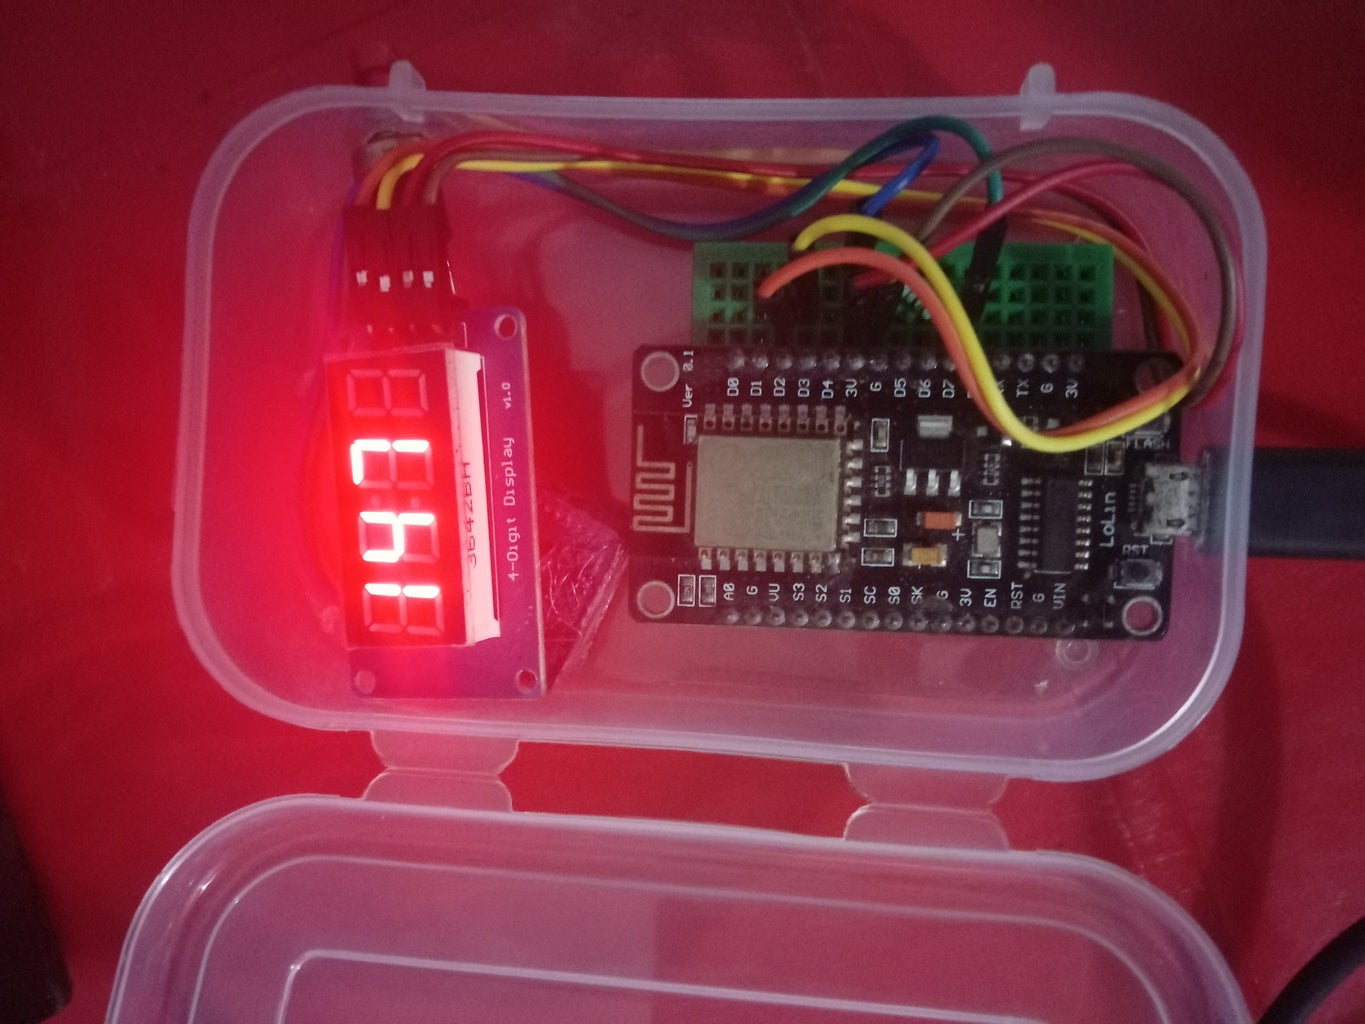 WIFI Display for Production Management